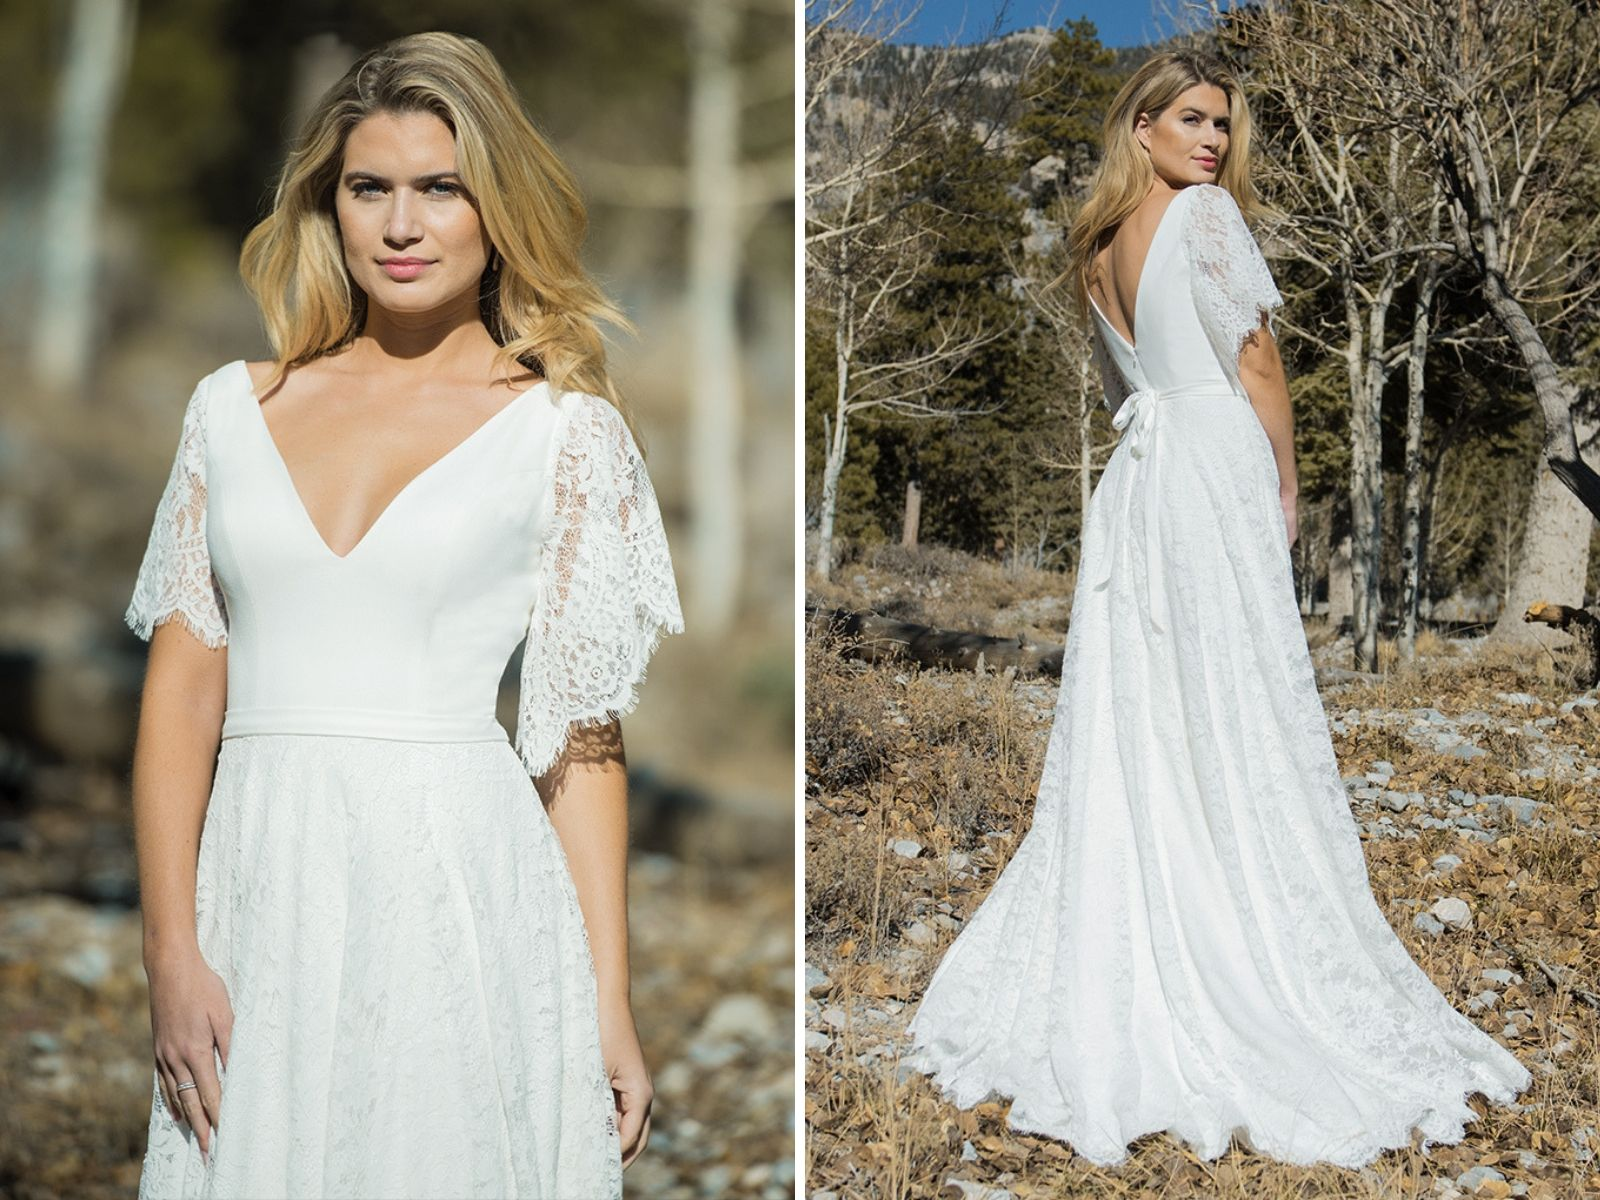 Wedding dress by Ivory and Co at Boho Bride Boutique in Stratford-Upon-Avon